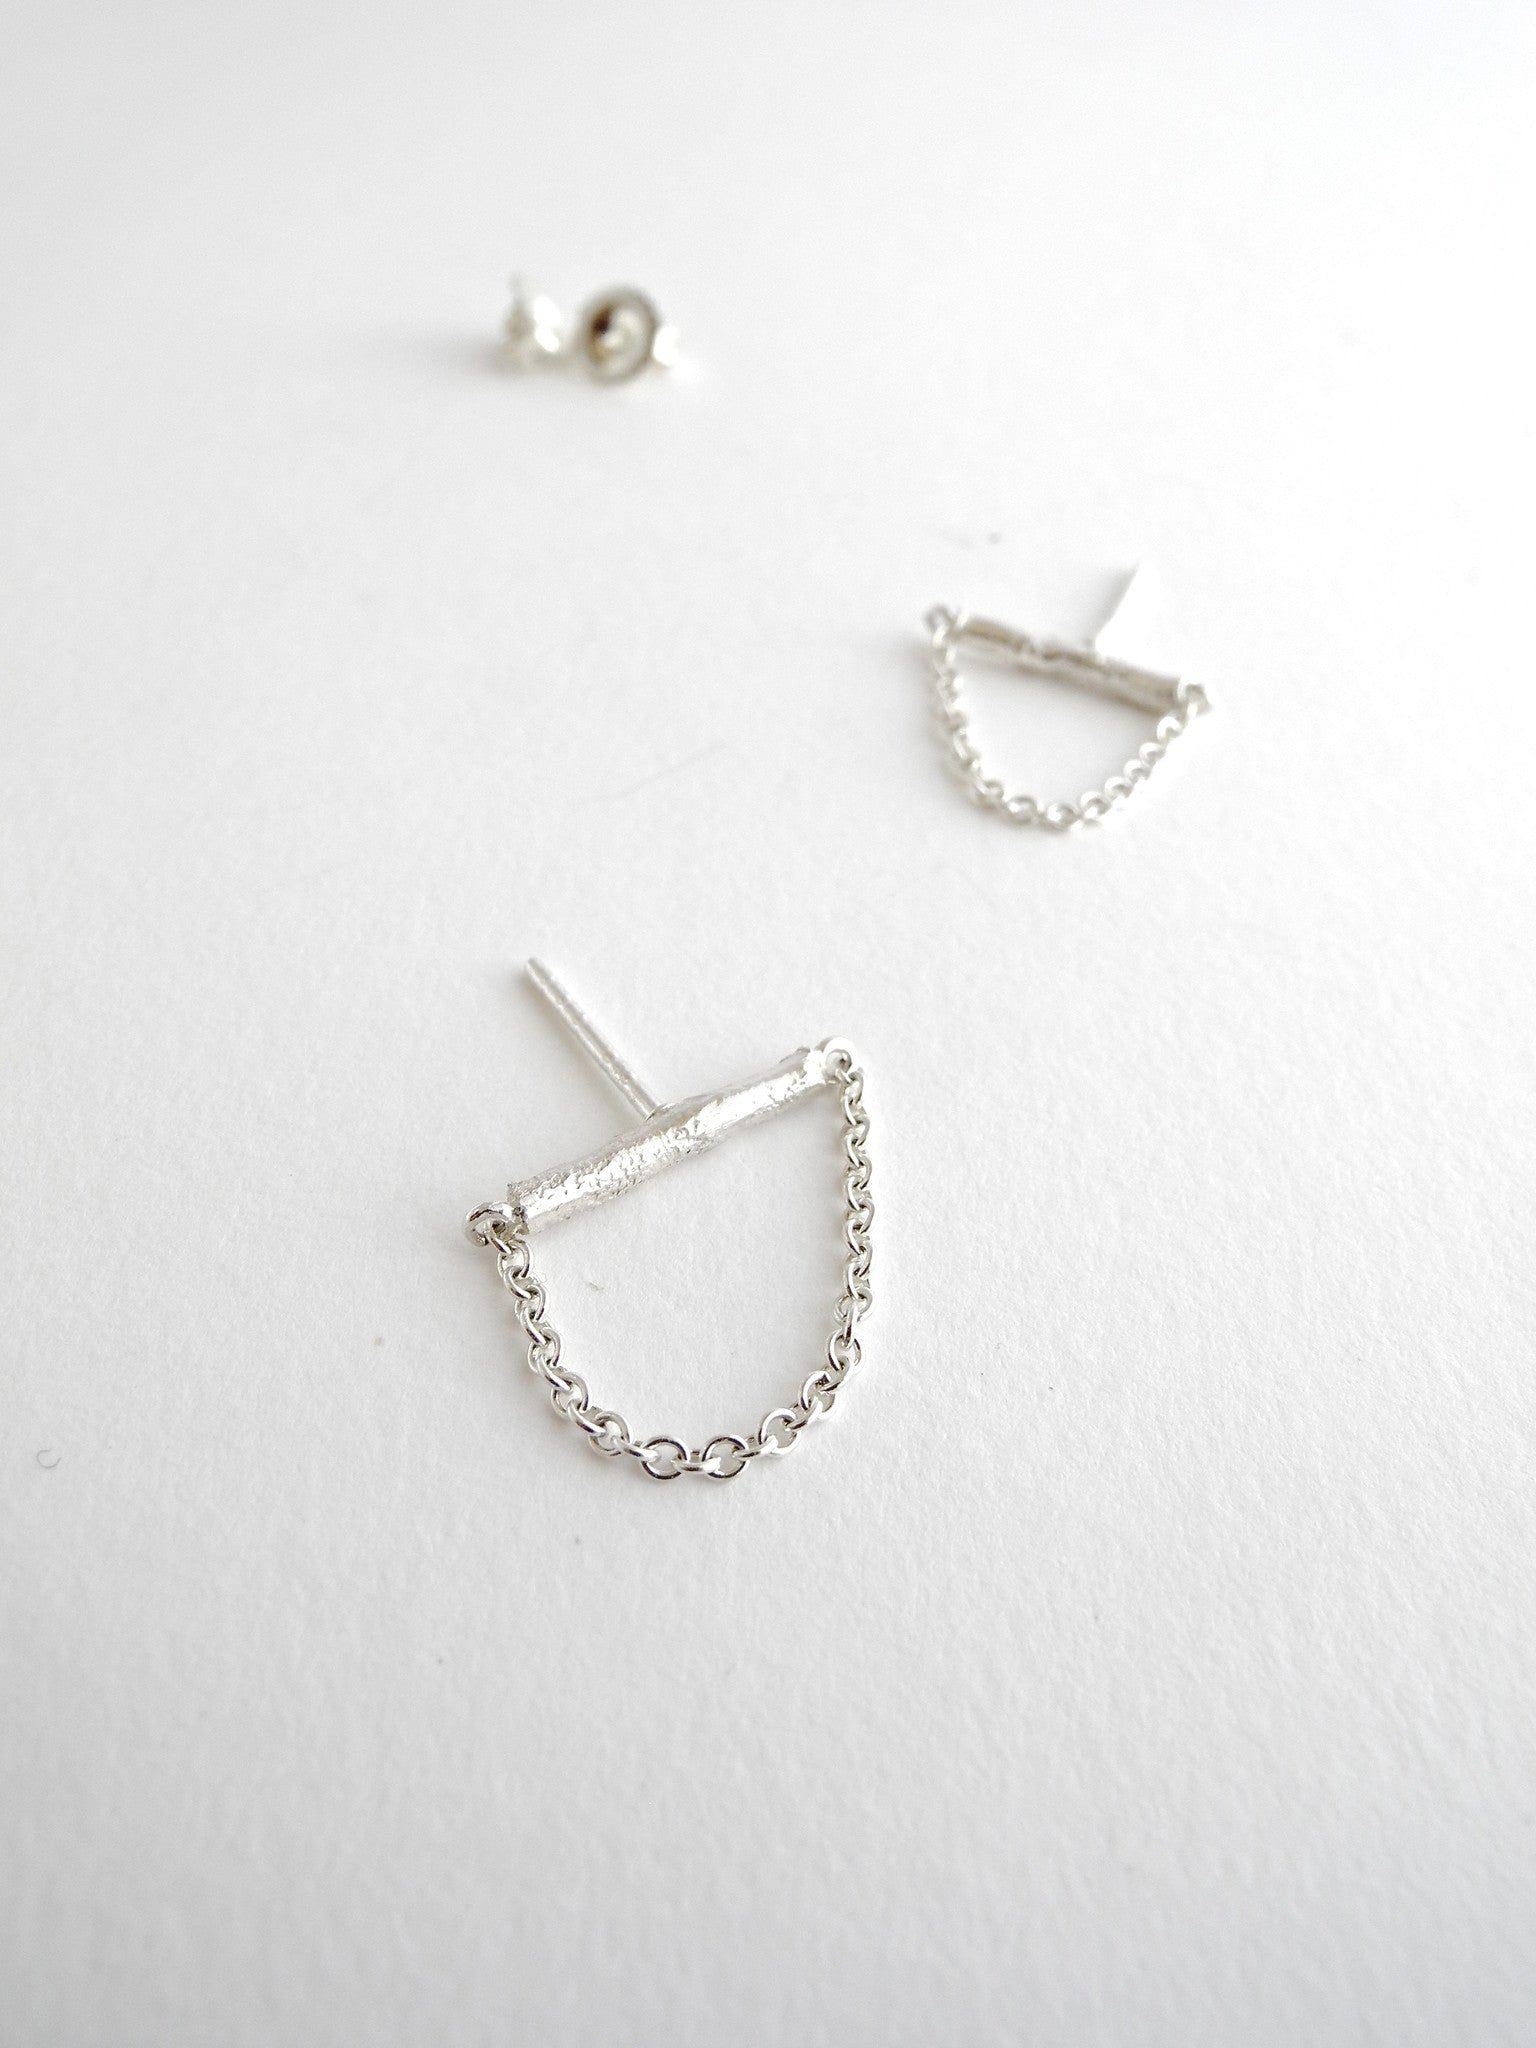 after nature stick earrings with chain